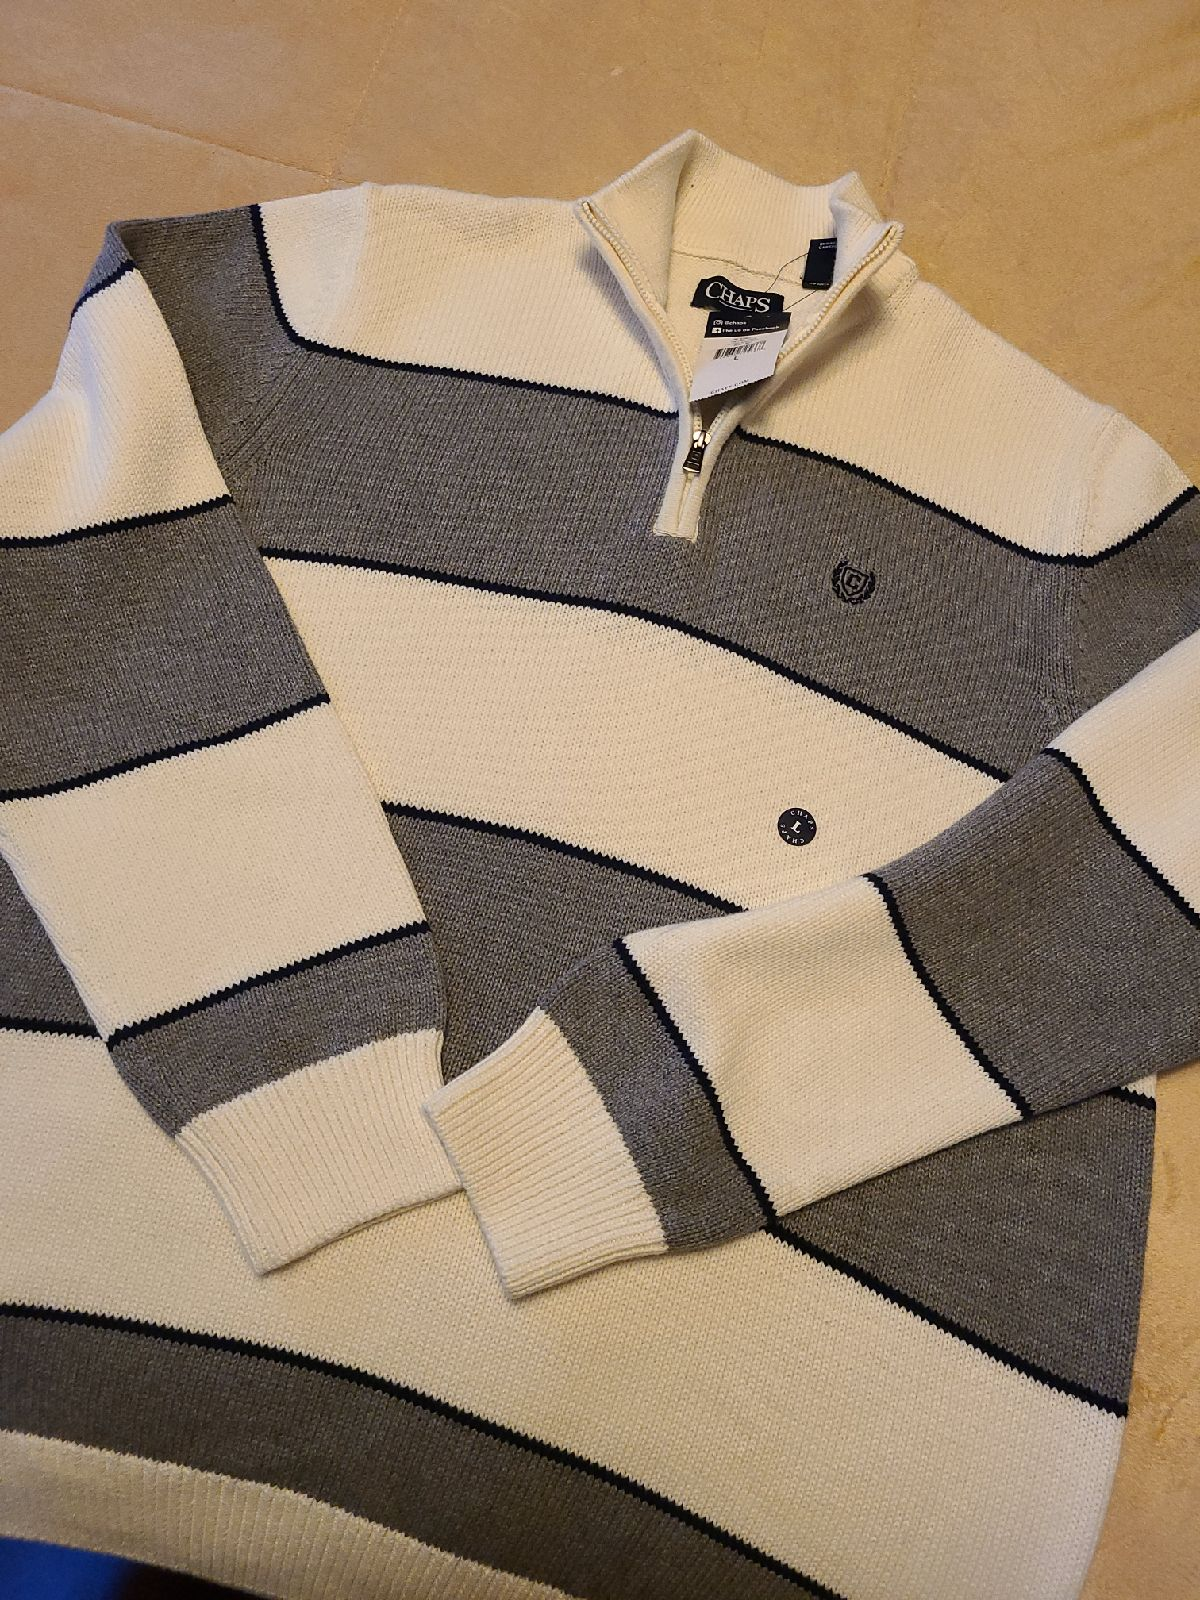 Chaps Mens sweater, nwt, size large